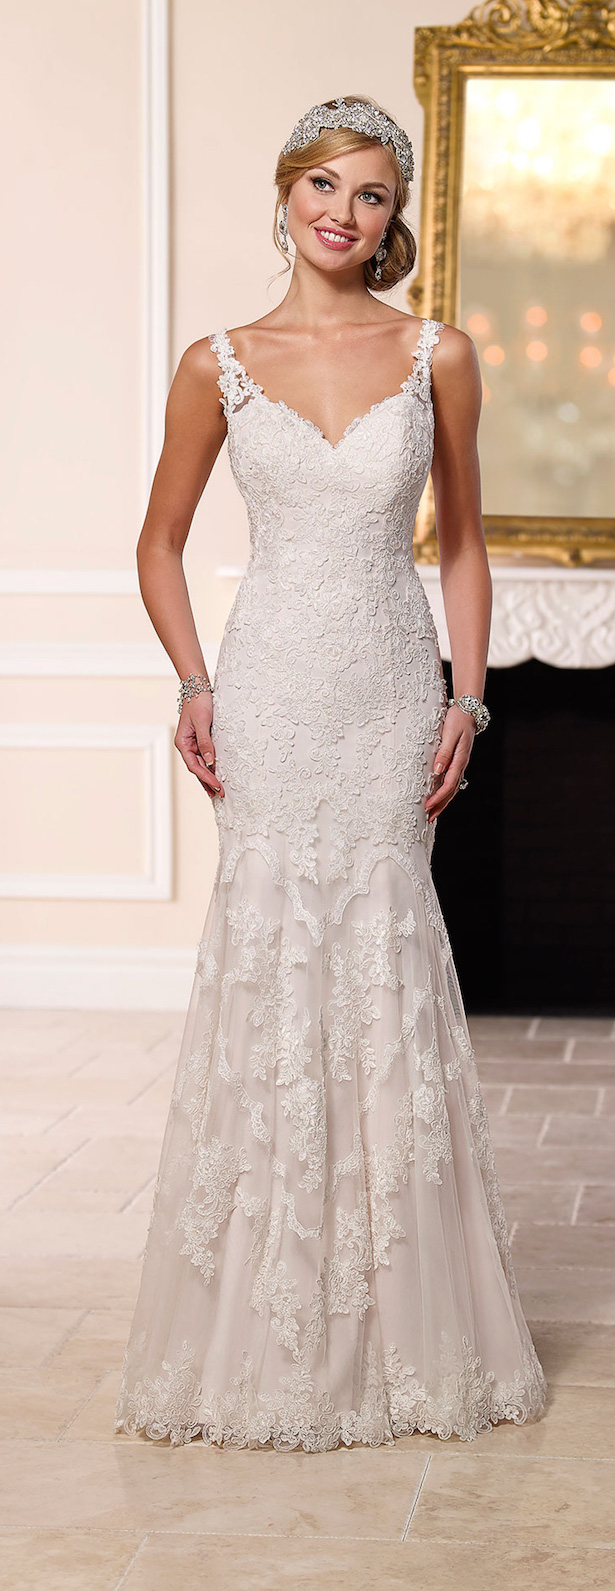 stella-york-spring-2016-wedding-dress-39